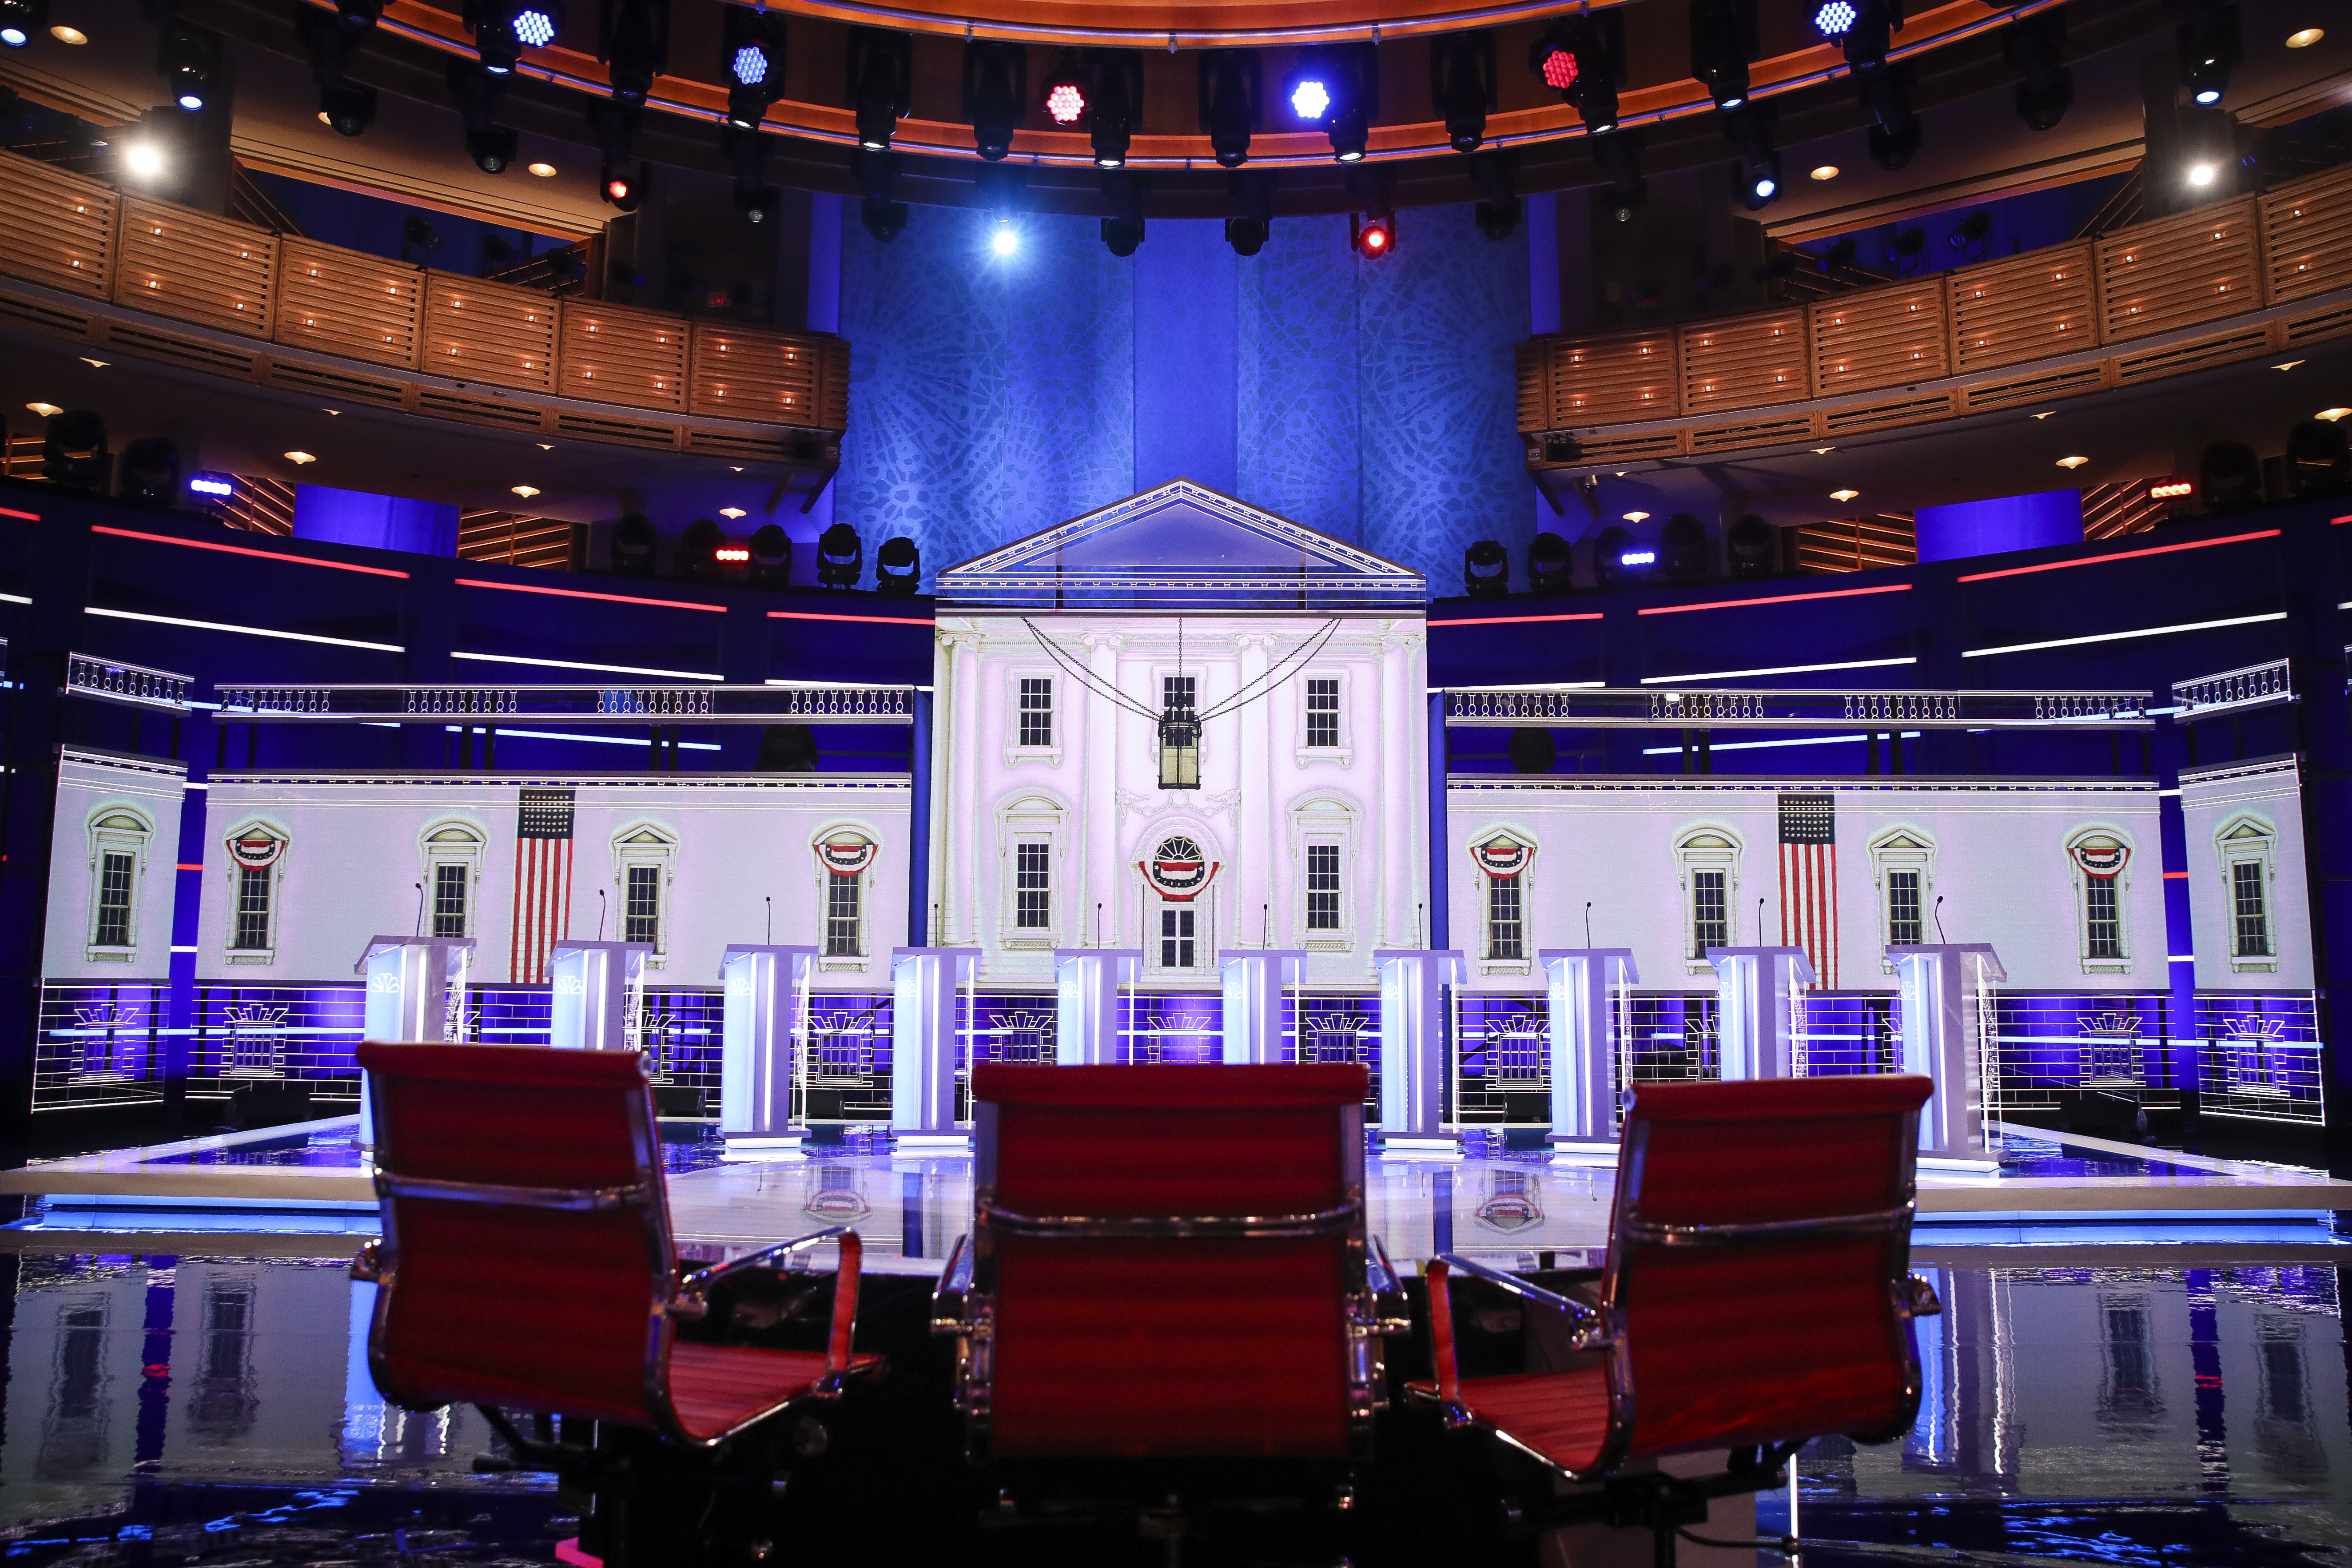 MIAMI, FL - JUNE 26: The stage is set for the first Democratic presidential primary debate for the 2020 election at the Adrienne Arsht Center for the Performing Arts, June 26, 2019 in Miami, Florida. A field of 20 Democratic presidential candidates was split into two groups of 10 for the first debate of the 2020 election, taking place over two nights at Knight Concert Hall of the Adrienne Arsht Center for the Performing Arts of Miami-Dade County, hosted by NBC News, MSNBC, and Telemundo. (Photo by Drew Angerer/Getty Images)